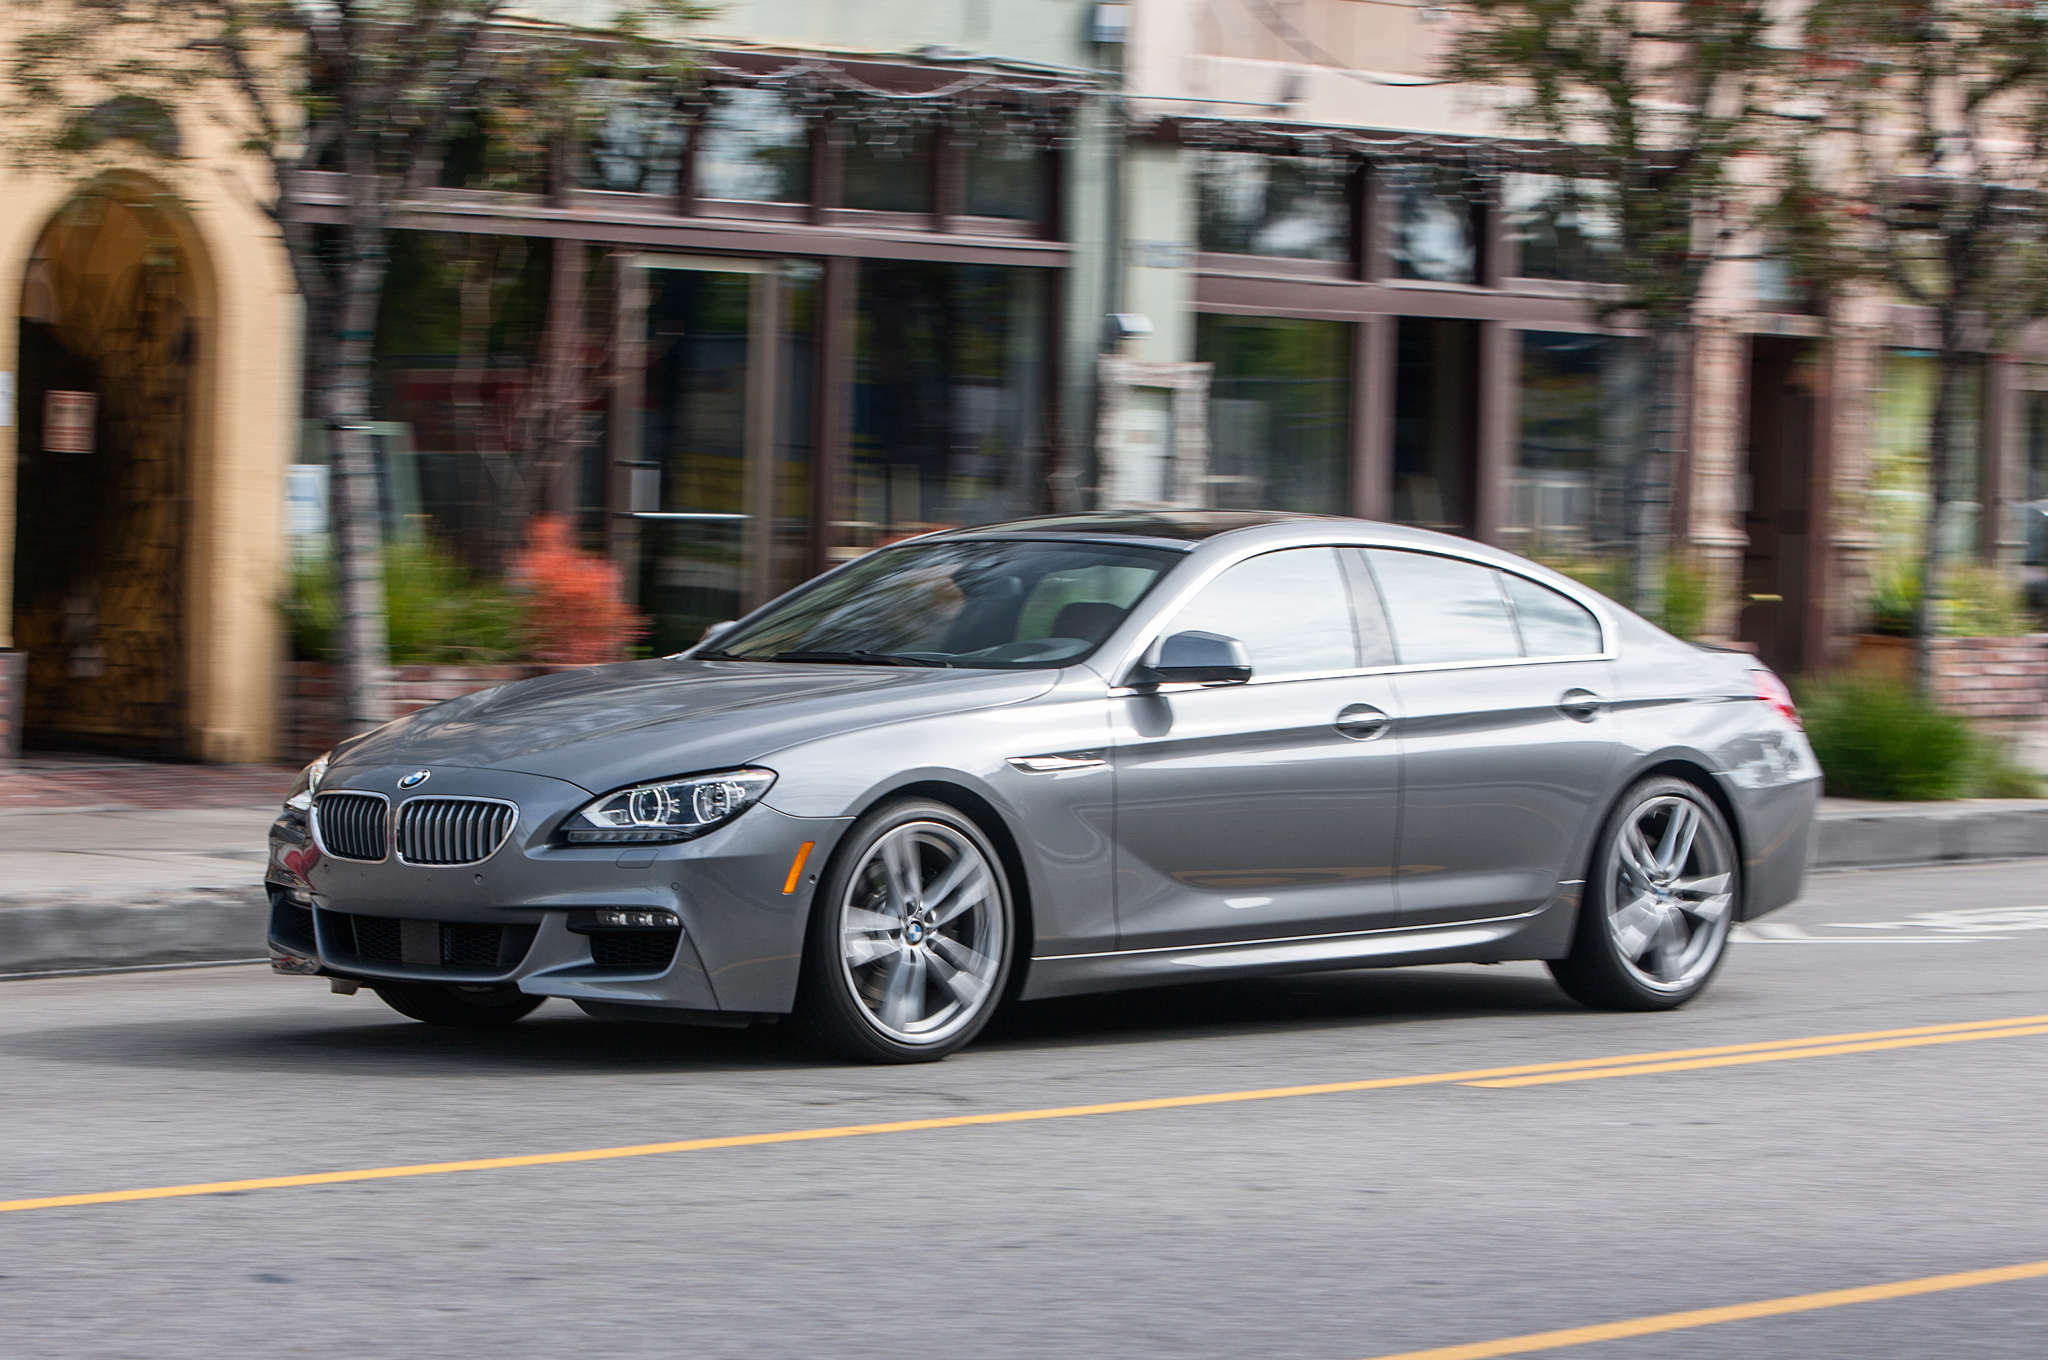 2013 Bmw 650i Gran Coupe Arrival Motortrend